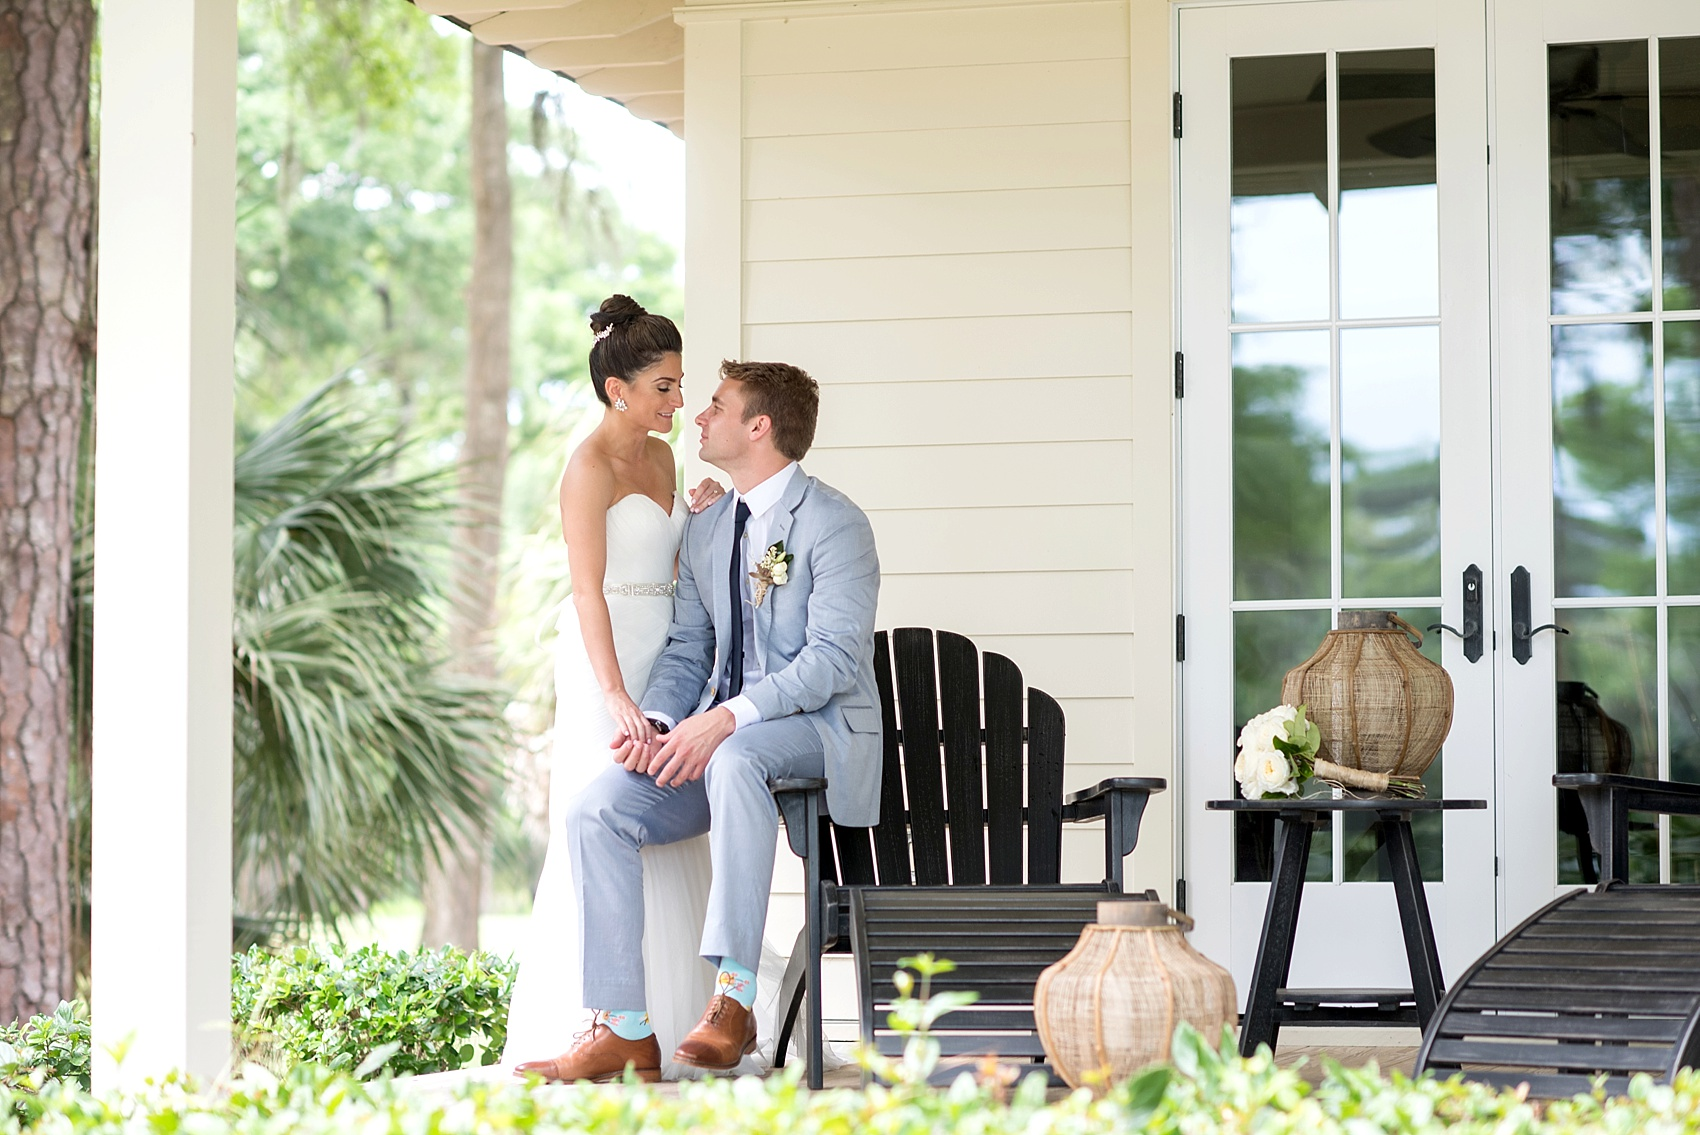 Bride and groom photos on a southern wrap around porch in Haig Point, South Carolina, off the coast of Hilton Head. Photos by Mikkel Paige Photography.